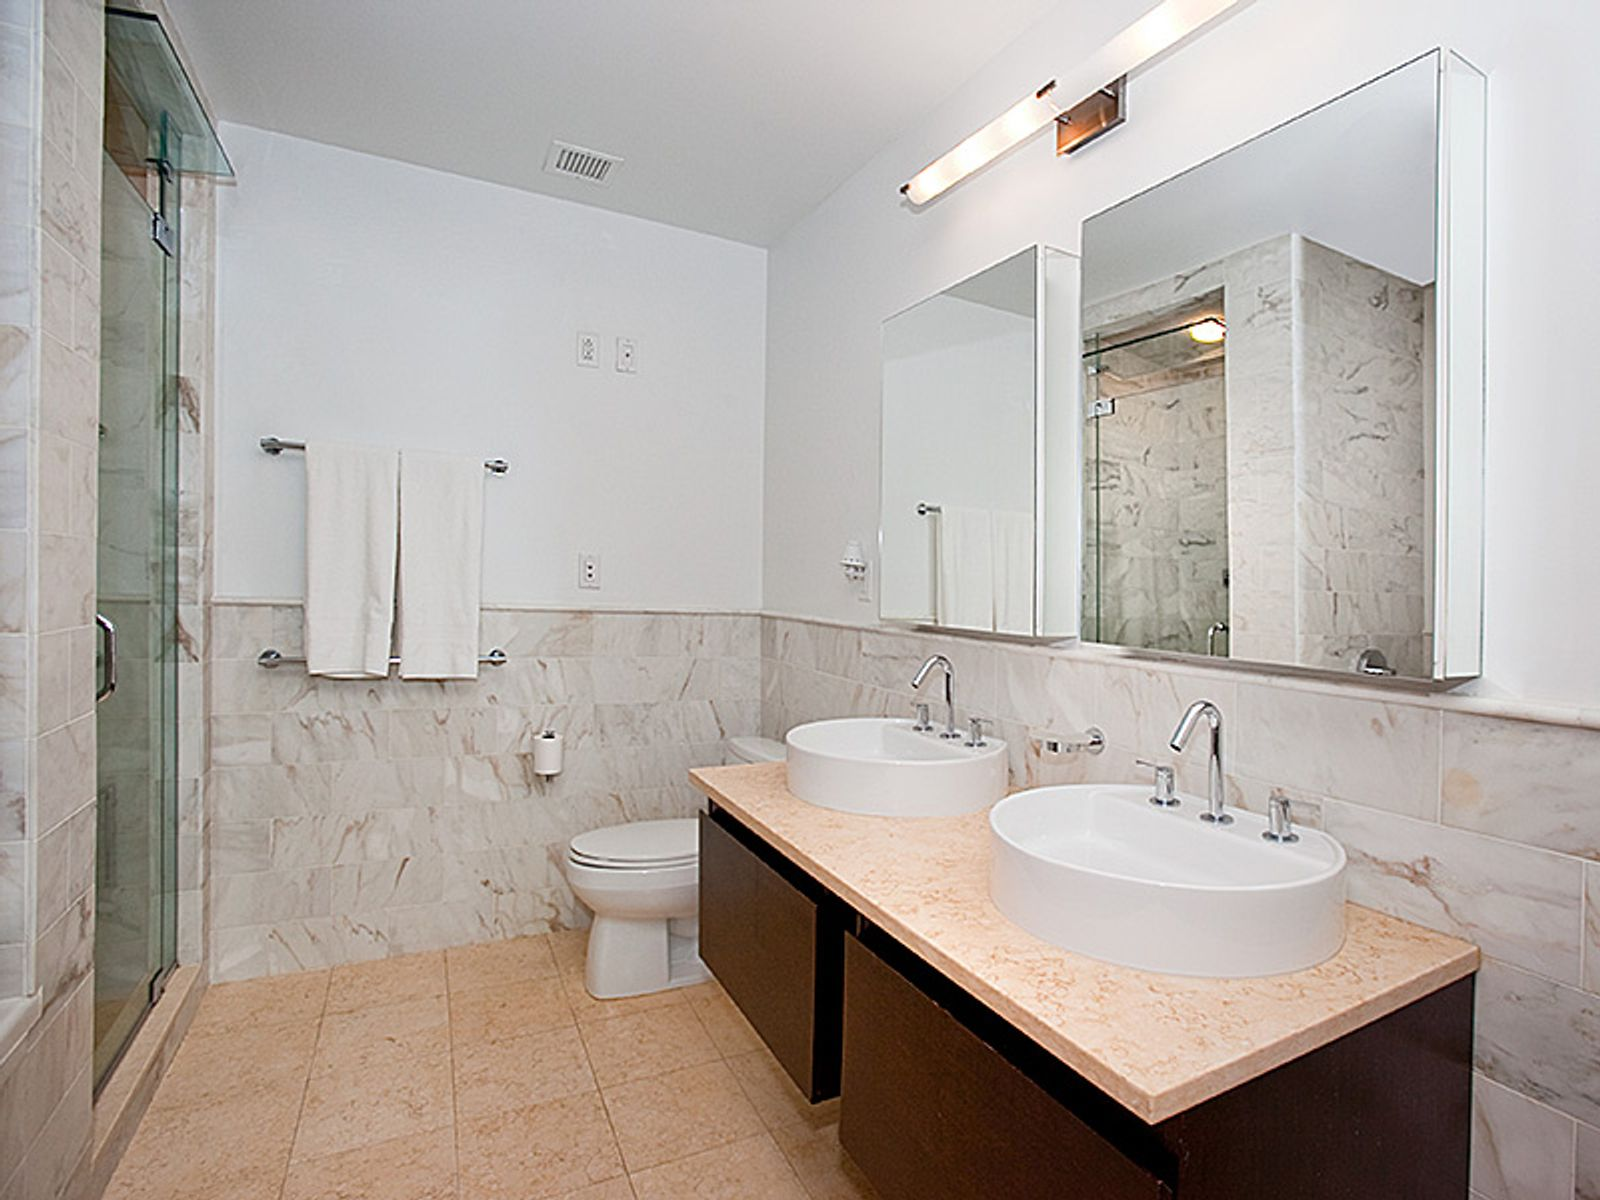 50 West 15th St., THC - New to Market